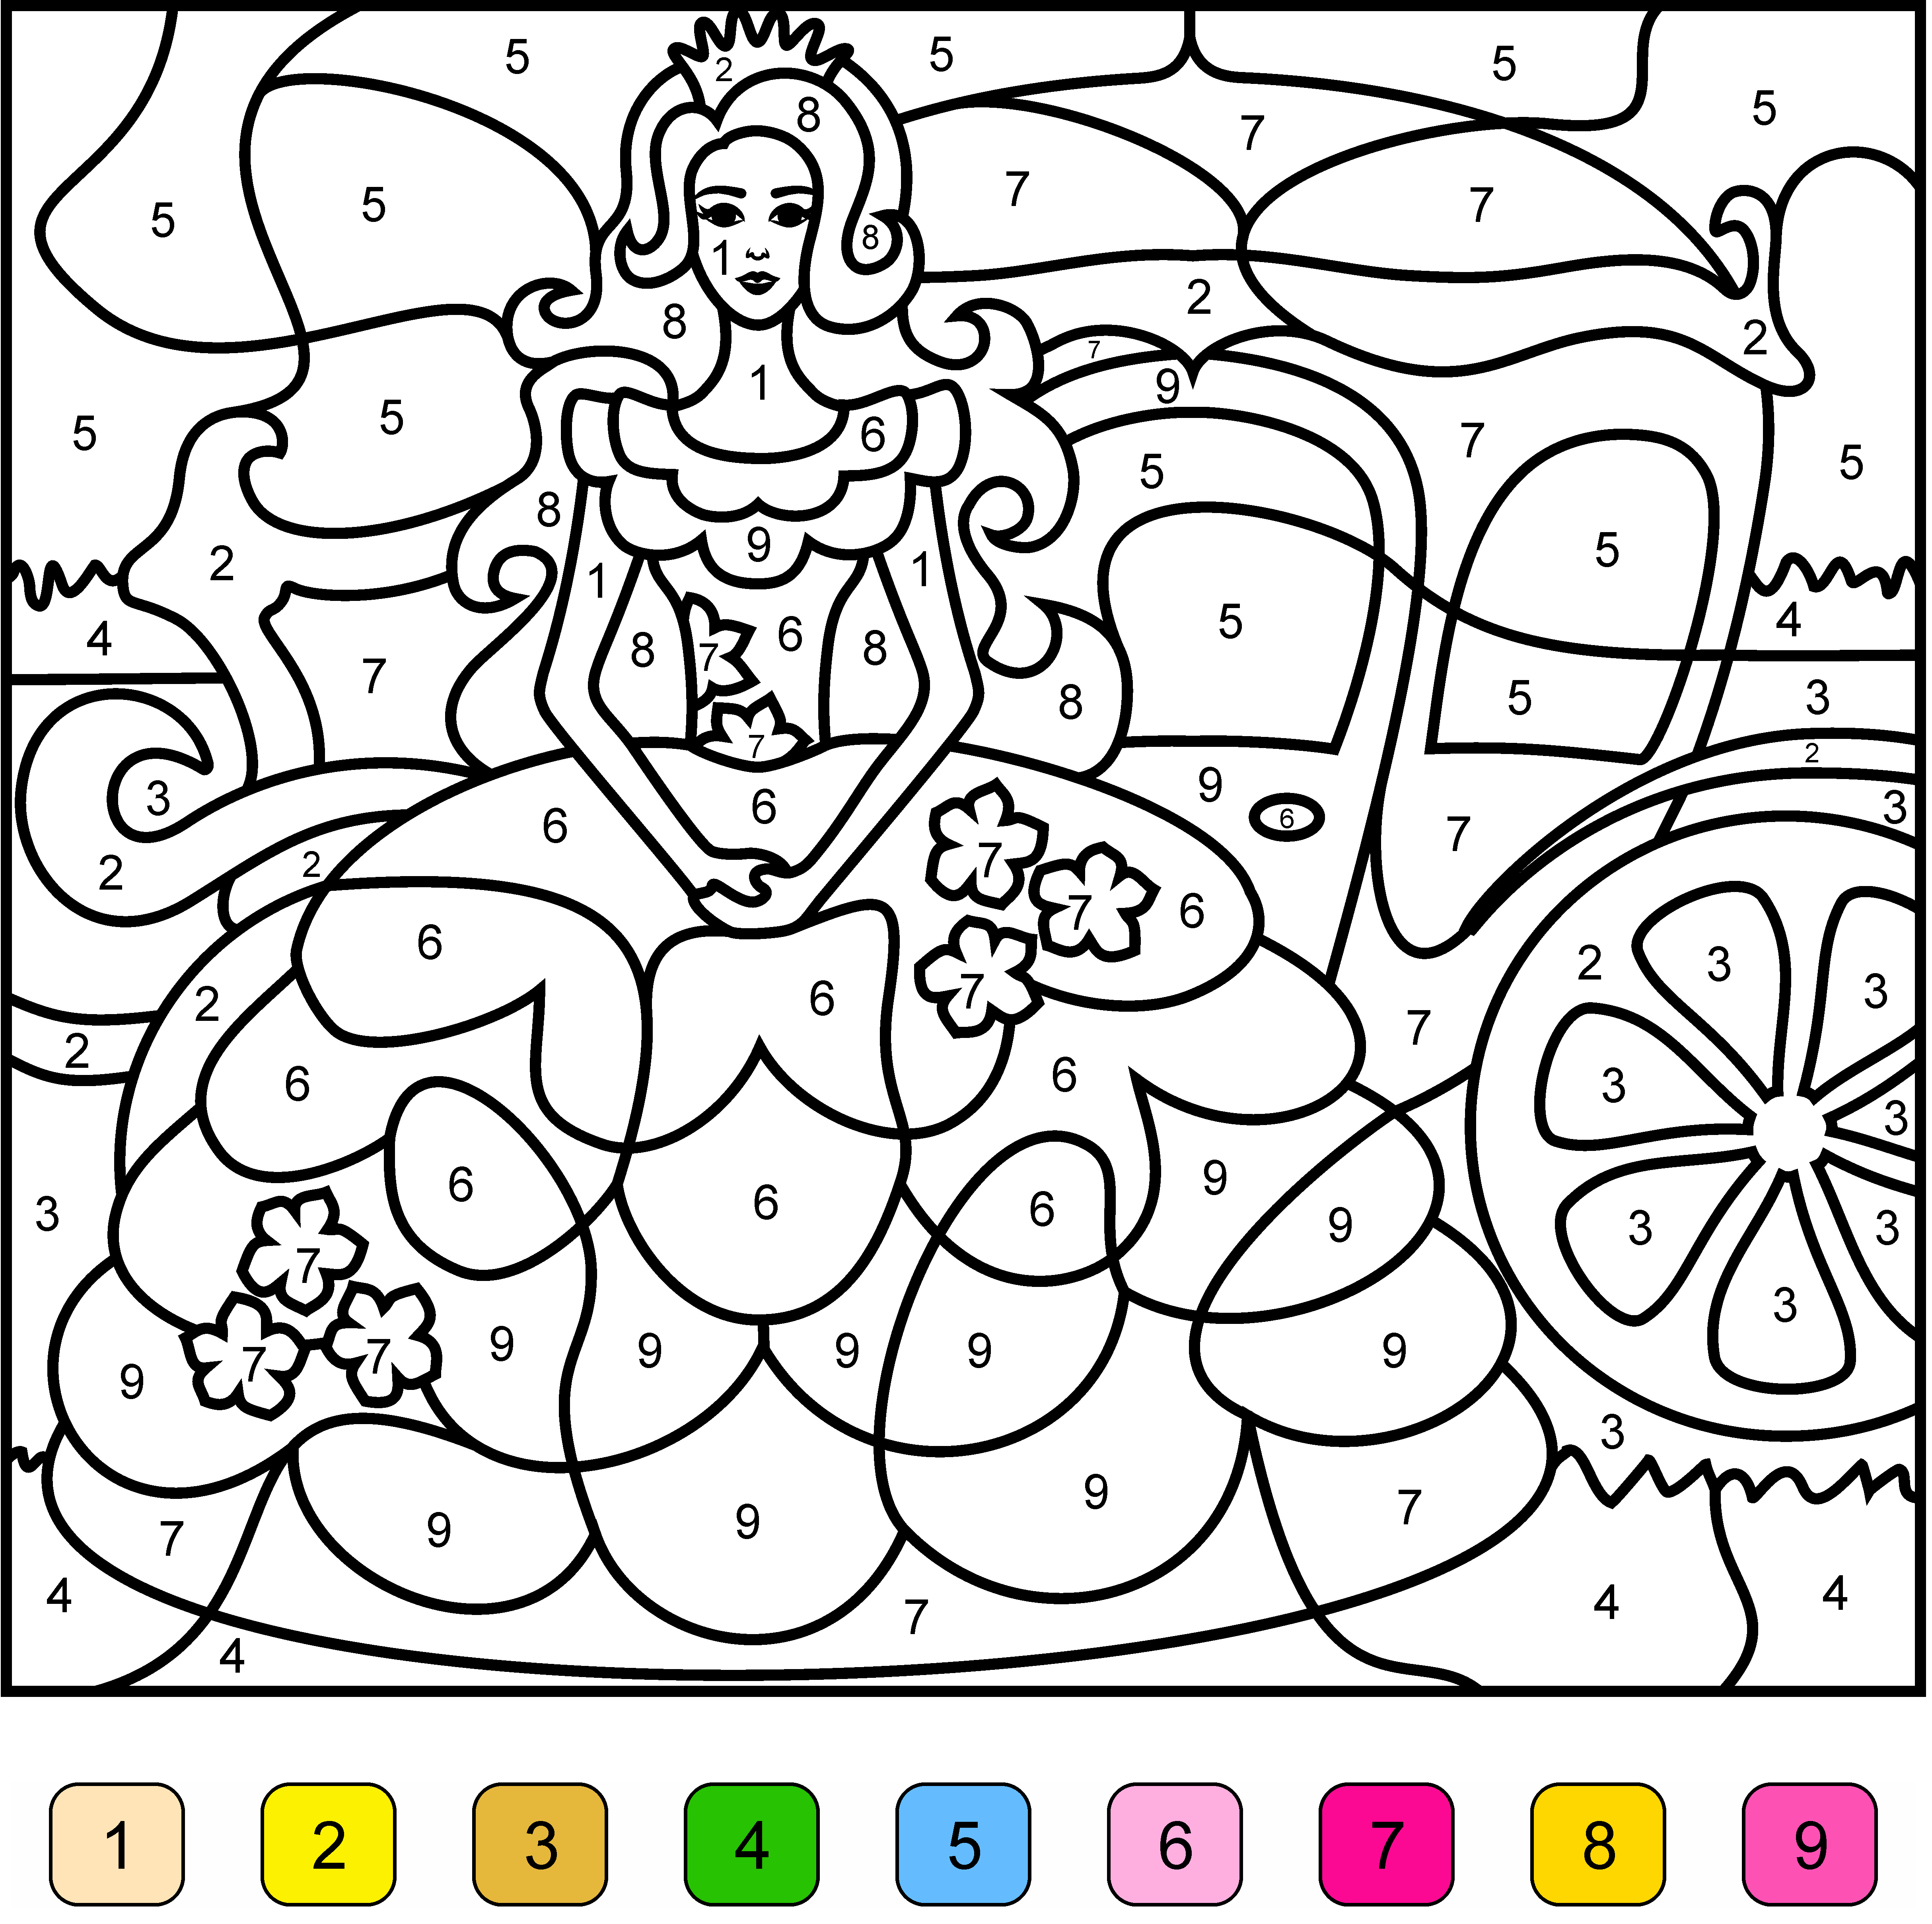 Princess Color By Number Free online coloring, Coloring